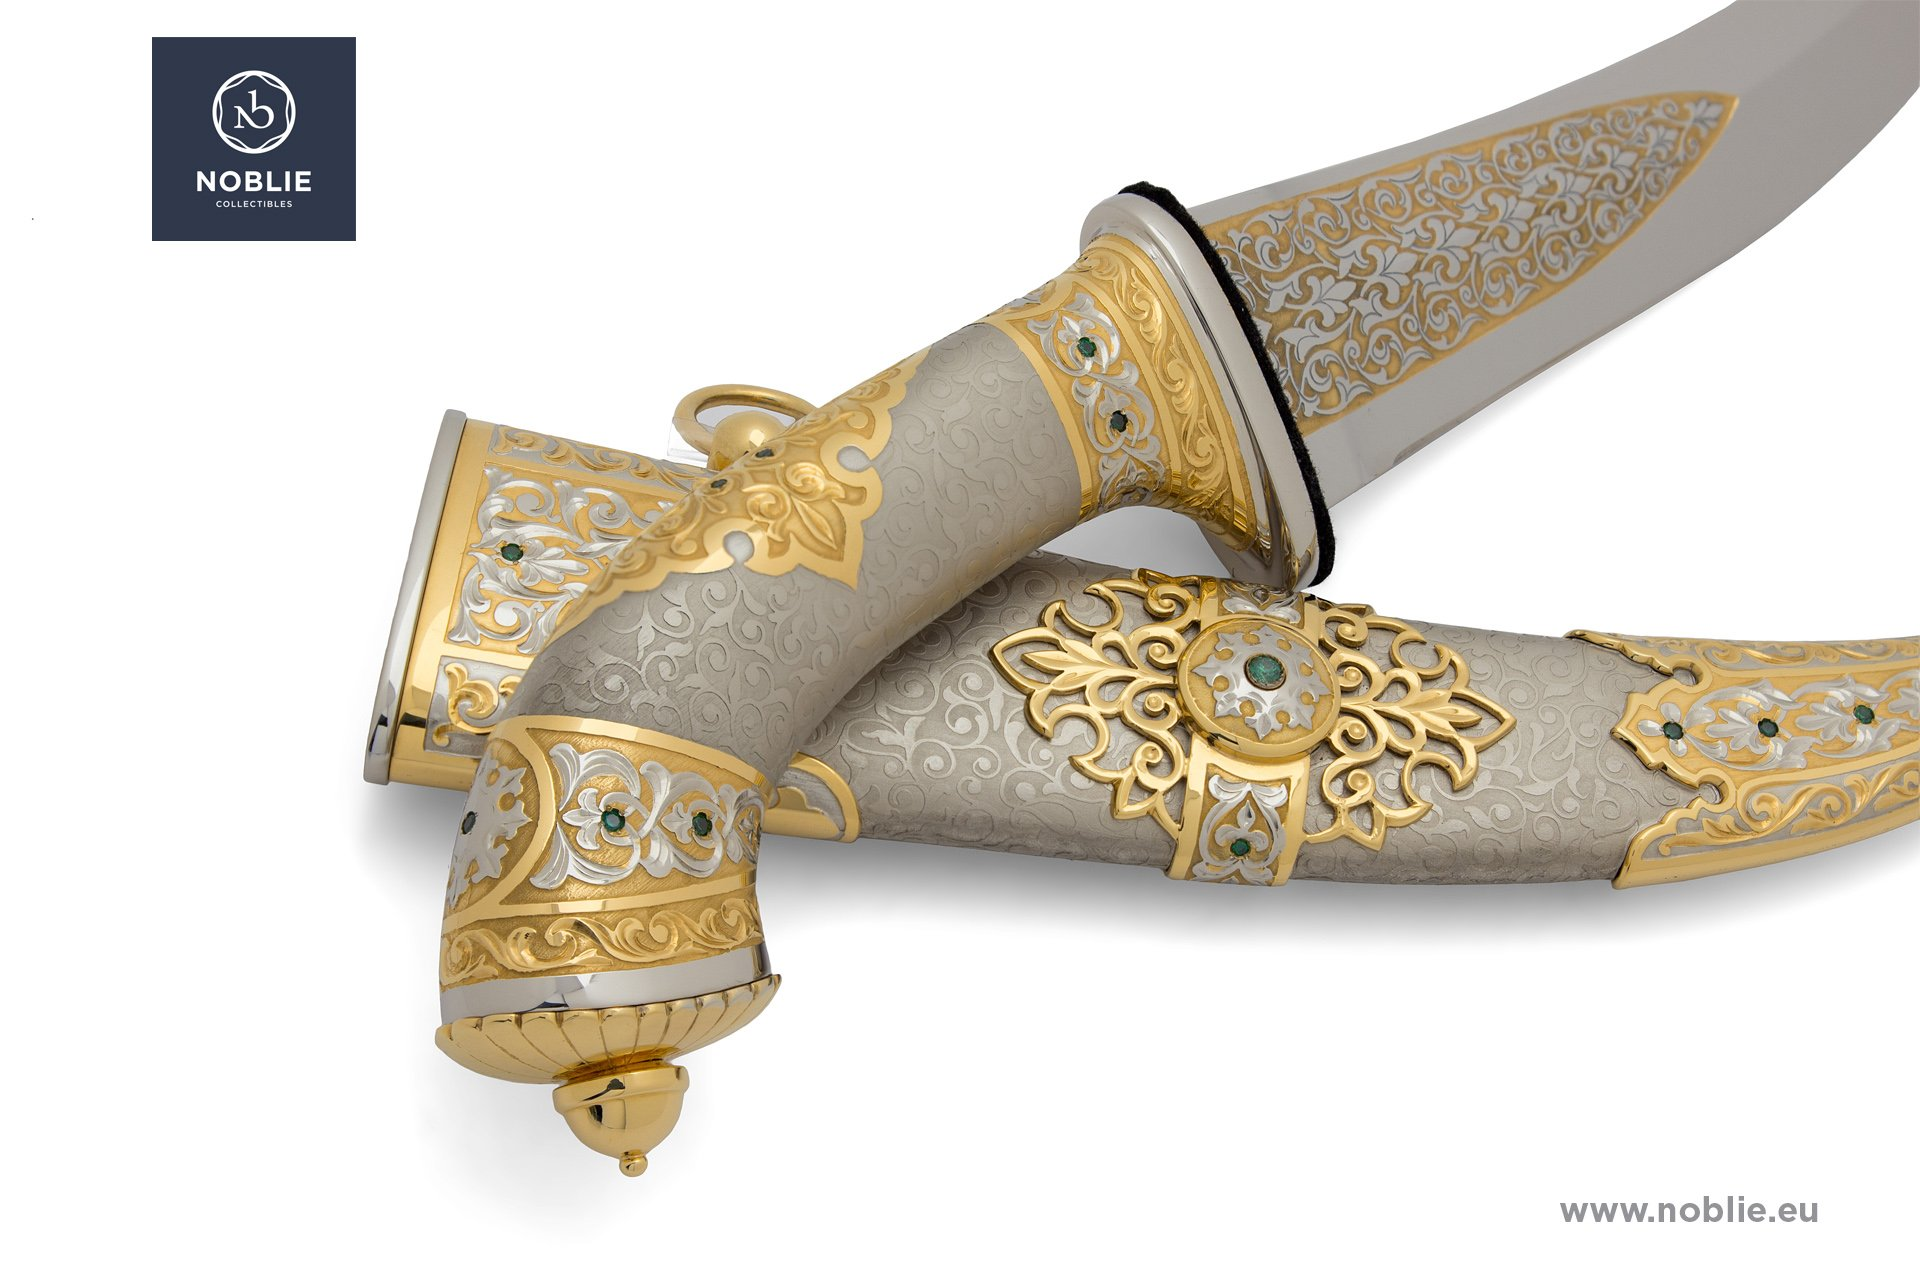 collectible blade ''Prince of Persia''